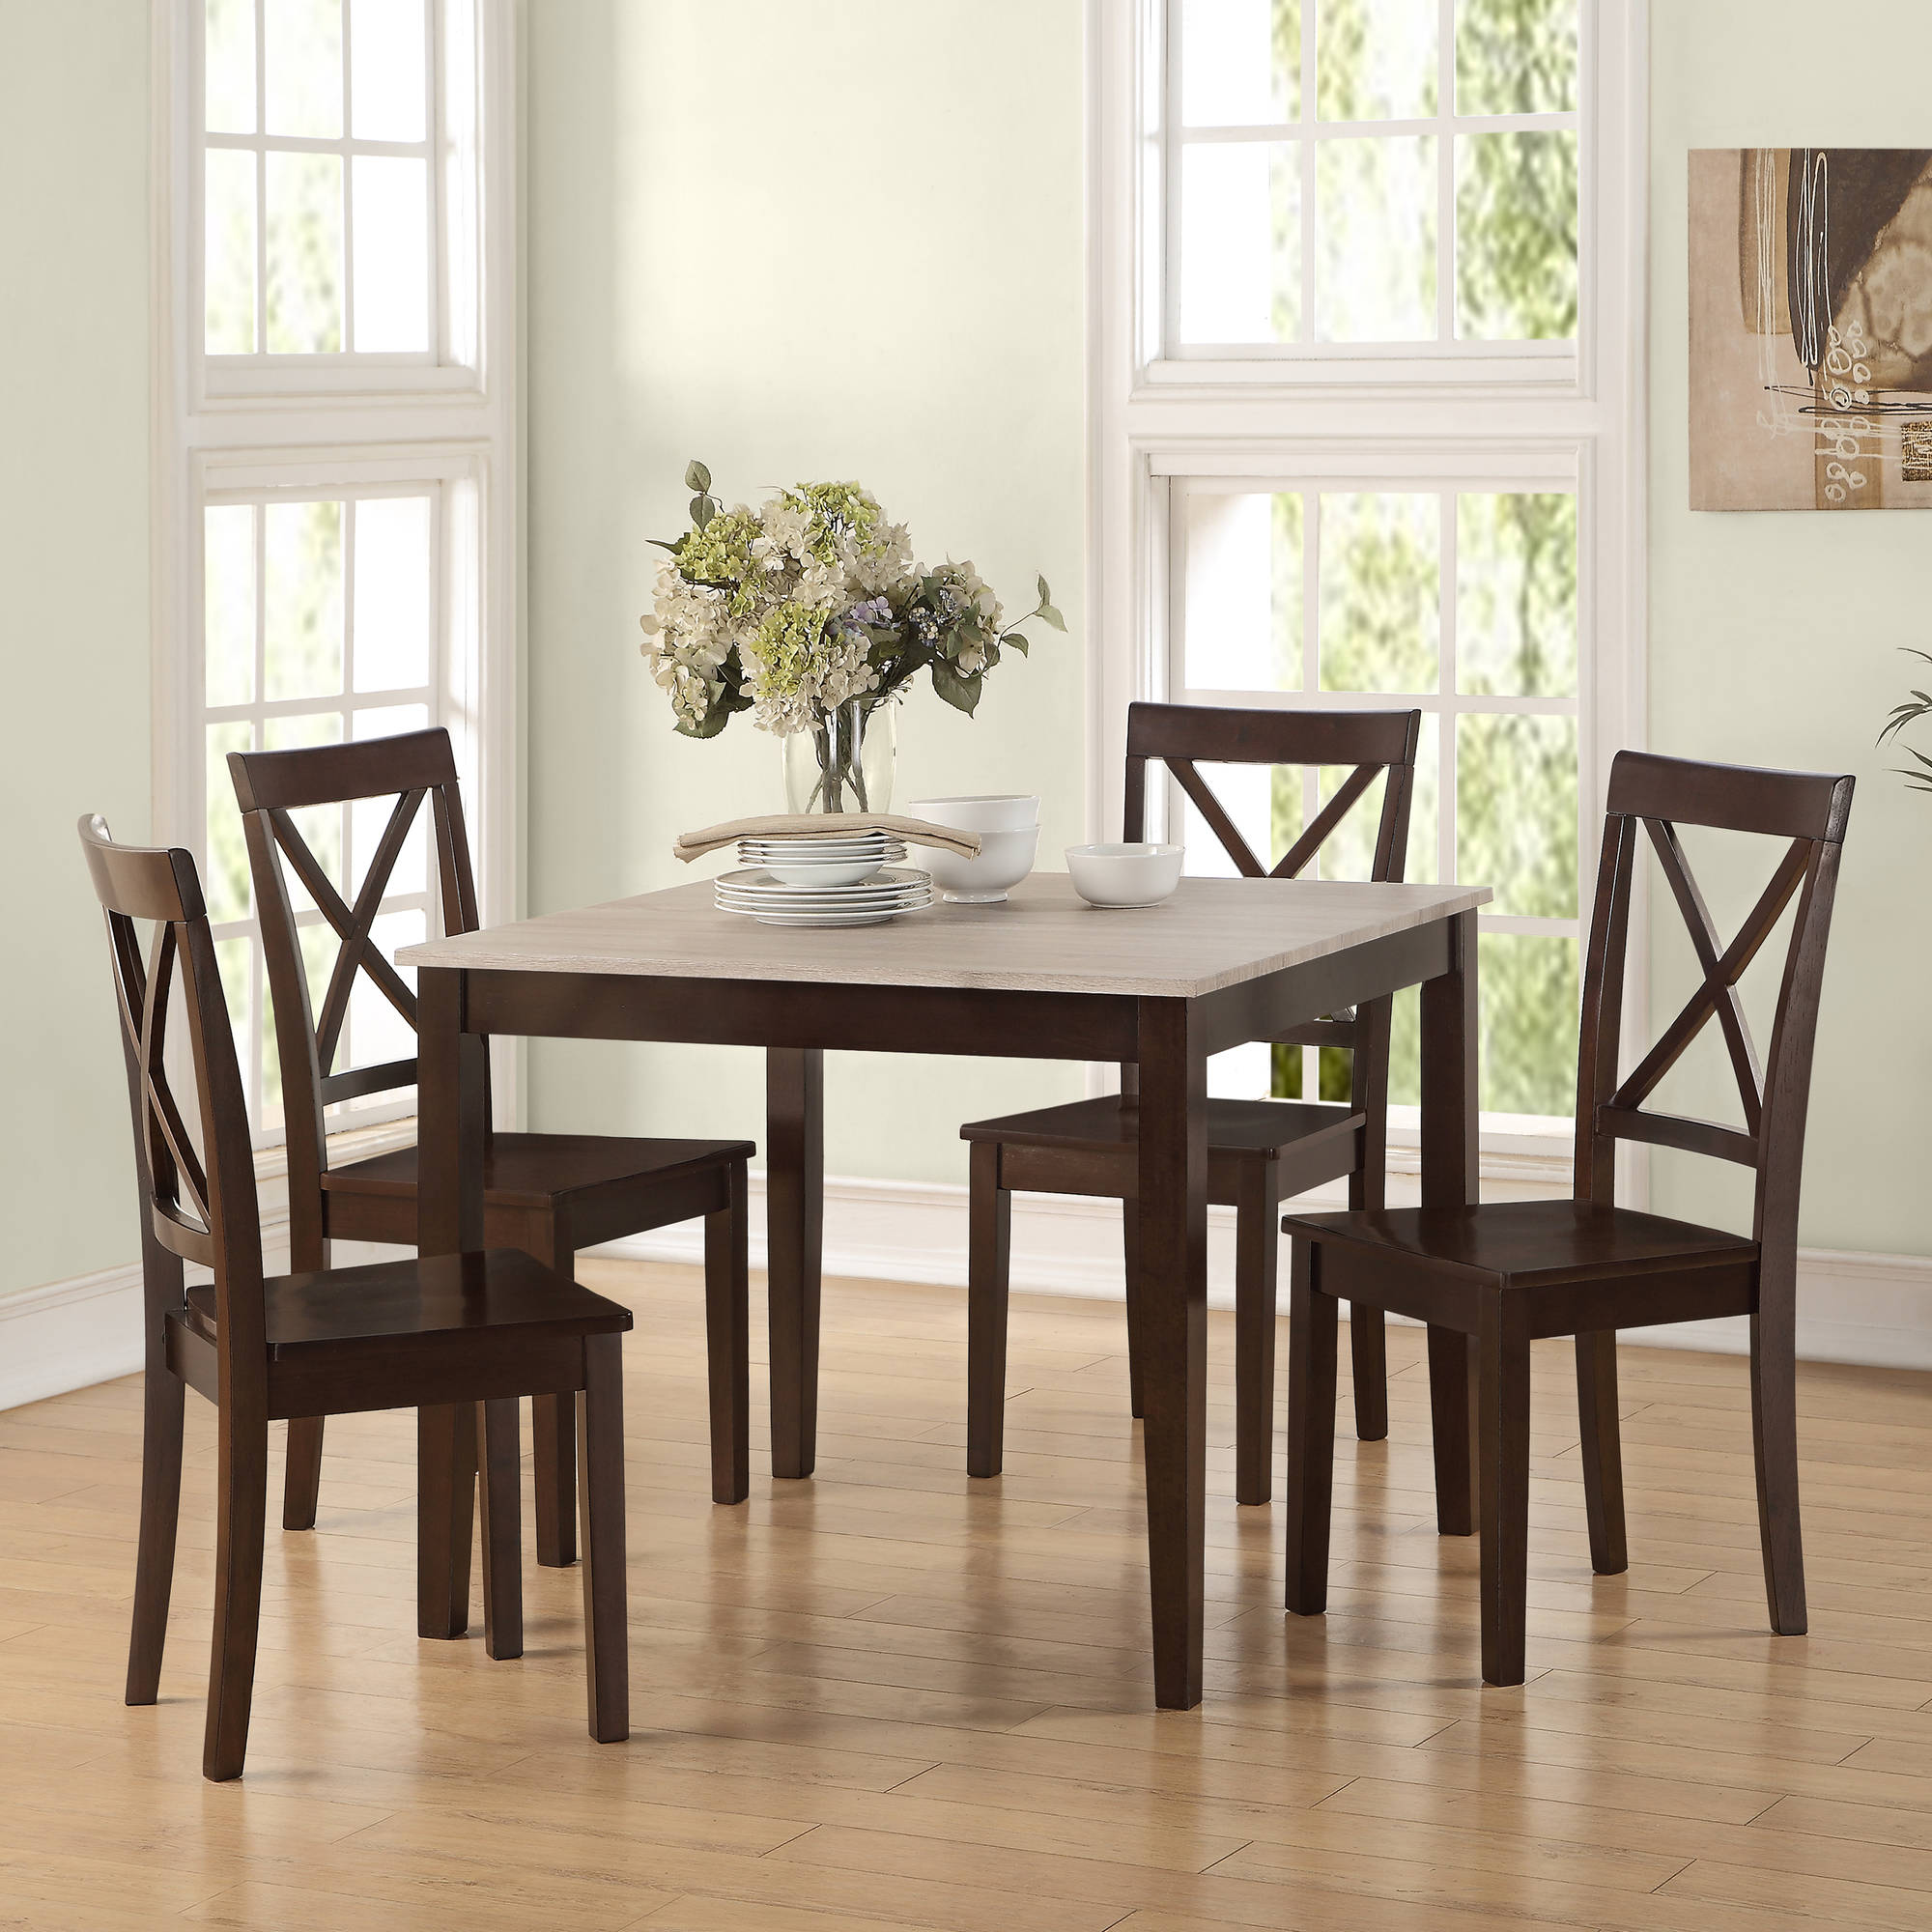 Powell turino 6 piece rectangle dining room set in grey for Dining room sets 6 piece